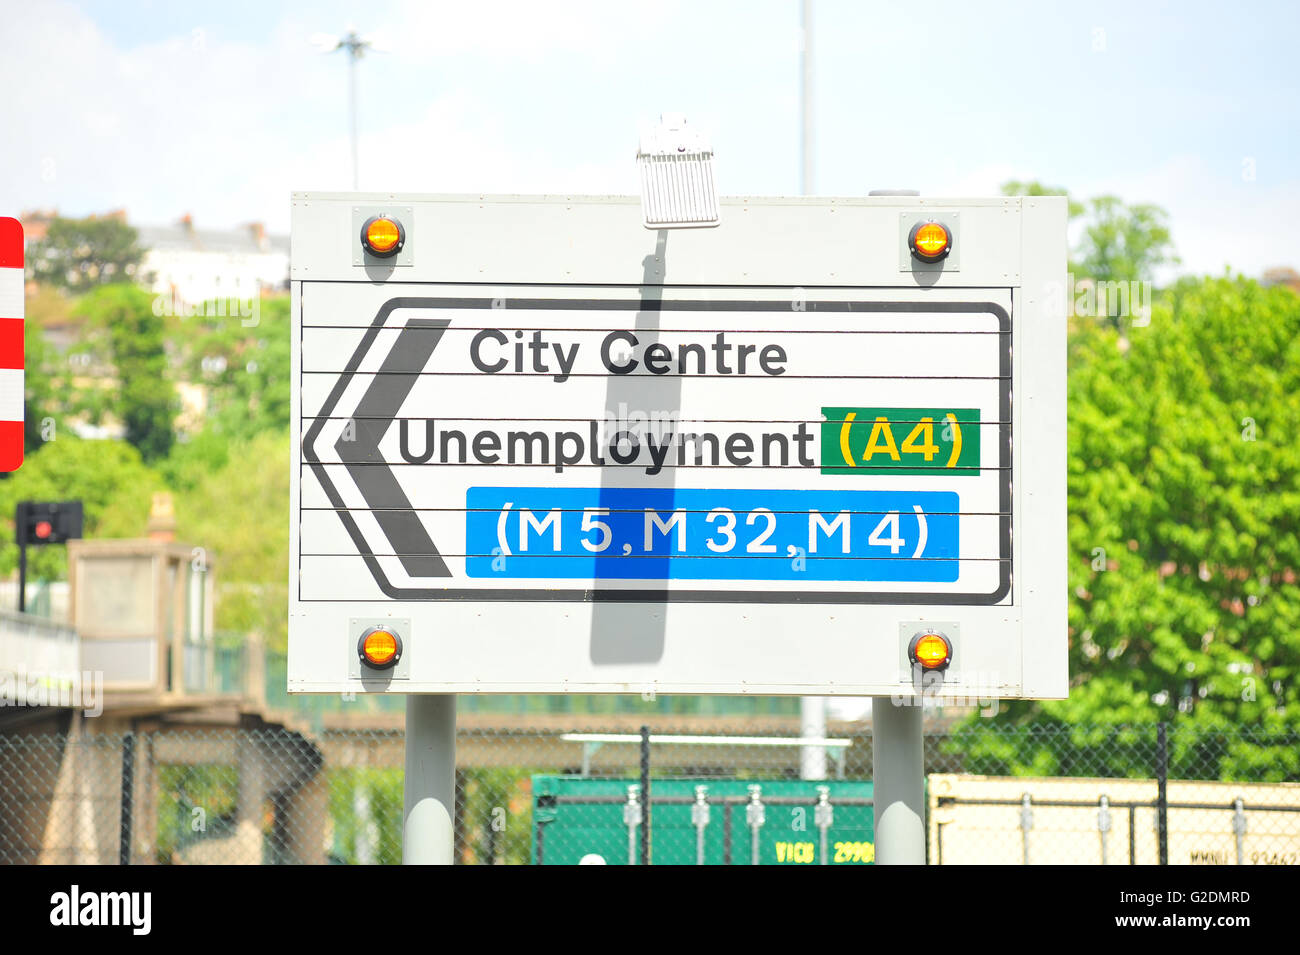 A City Centre road sign with Unemployment written on it. - Stock Image